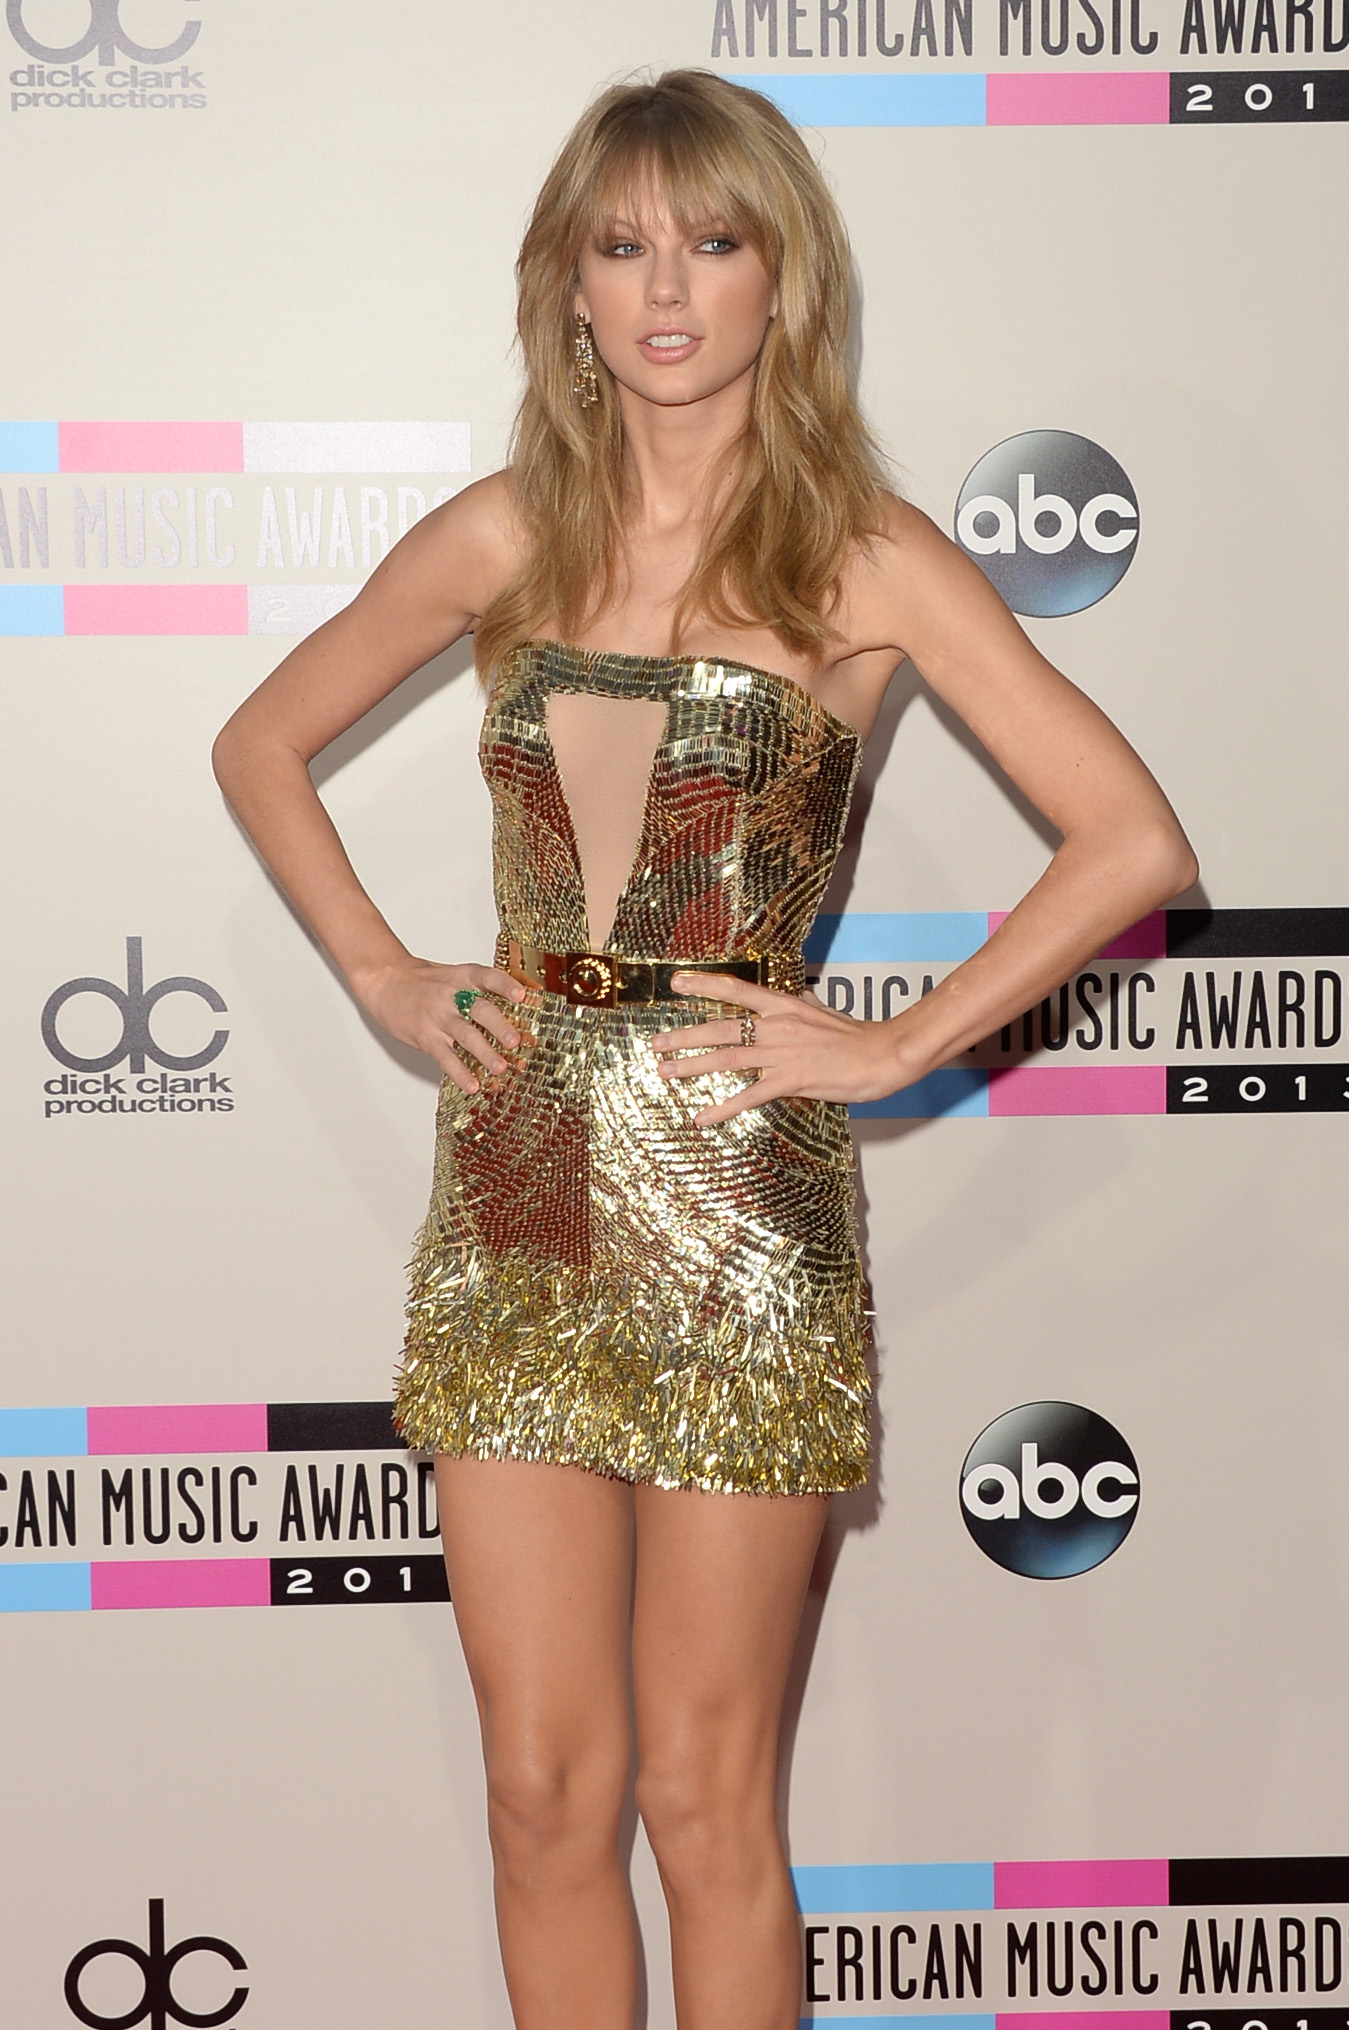 http://taylorpictures.net/albums/app/2013/americanmusicawards/023.jpg